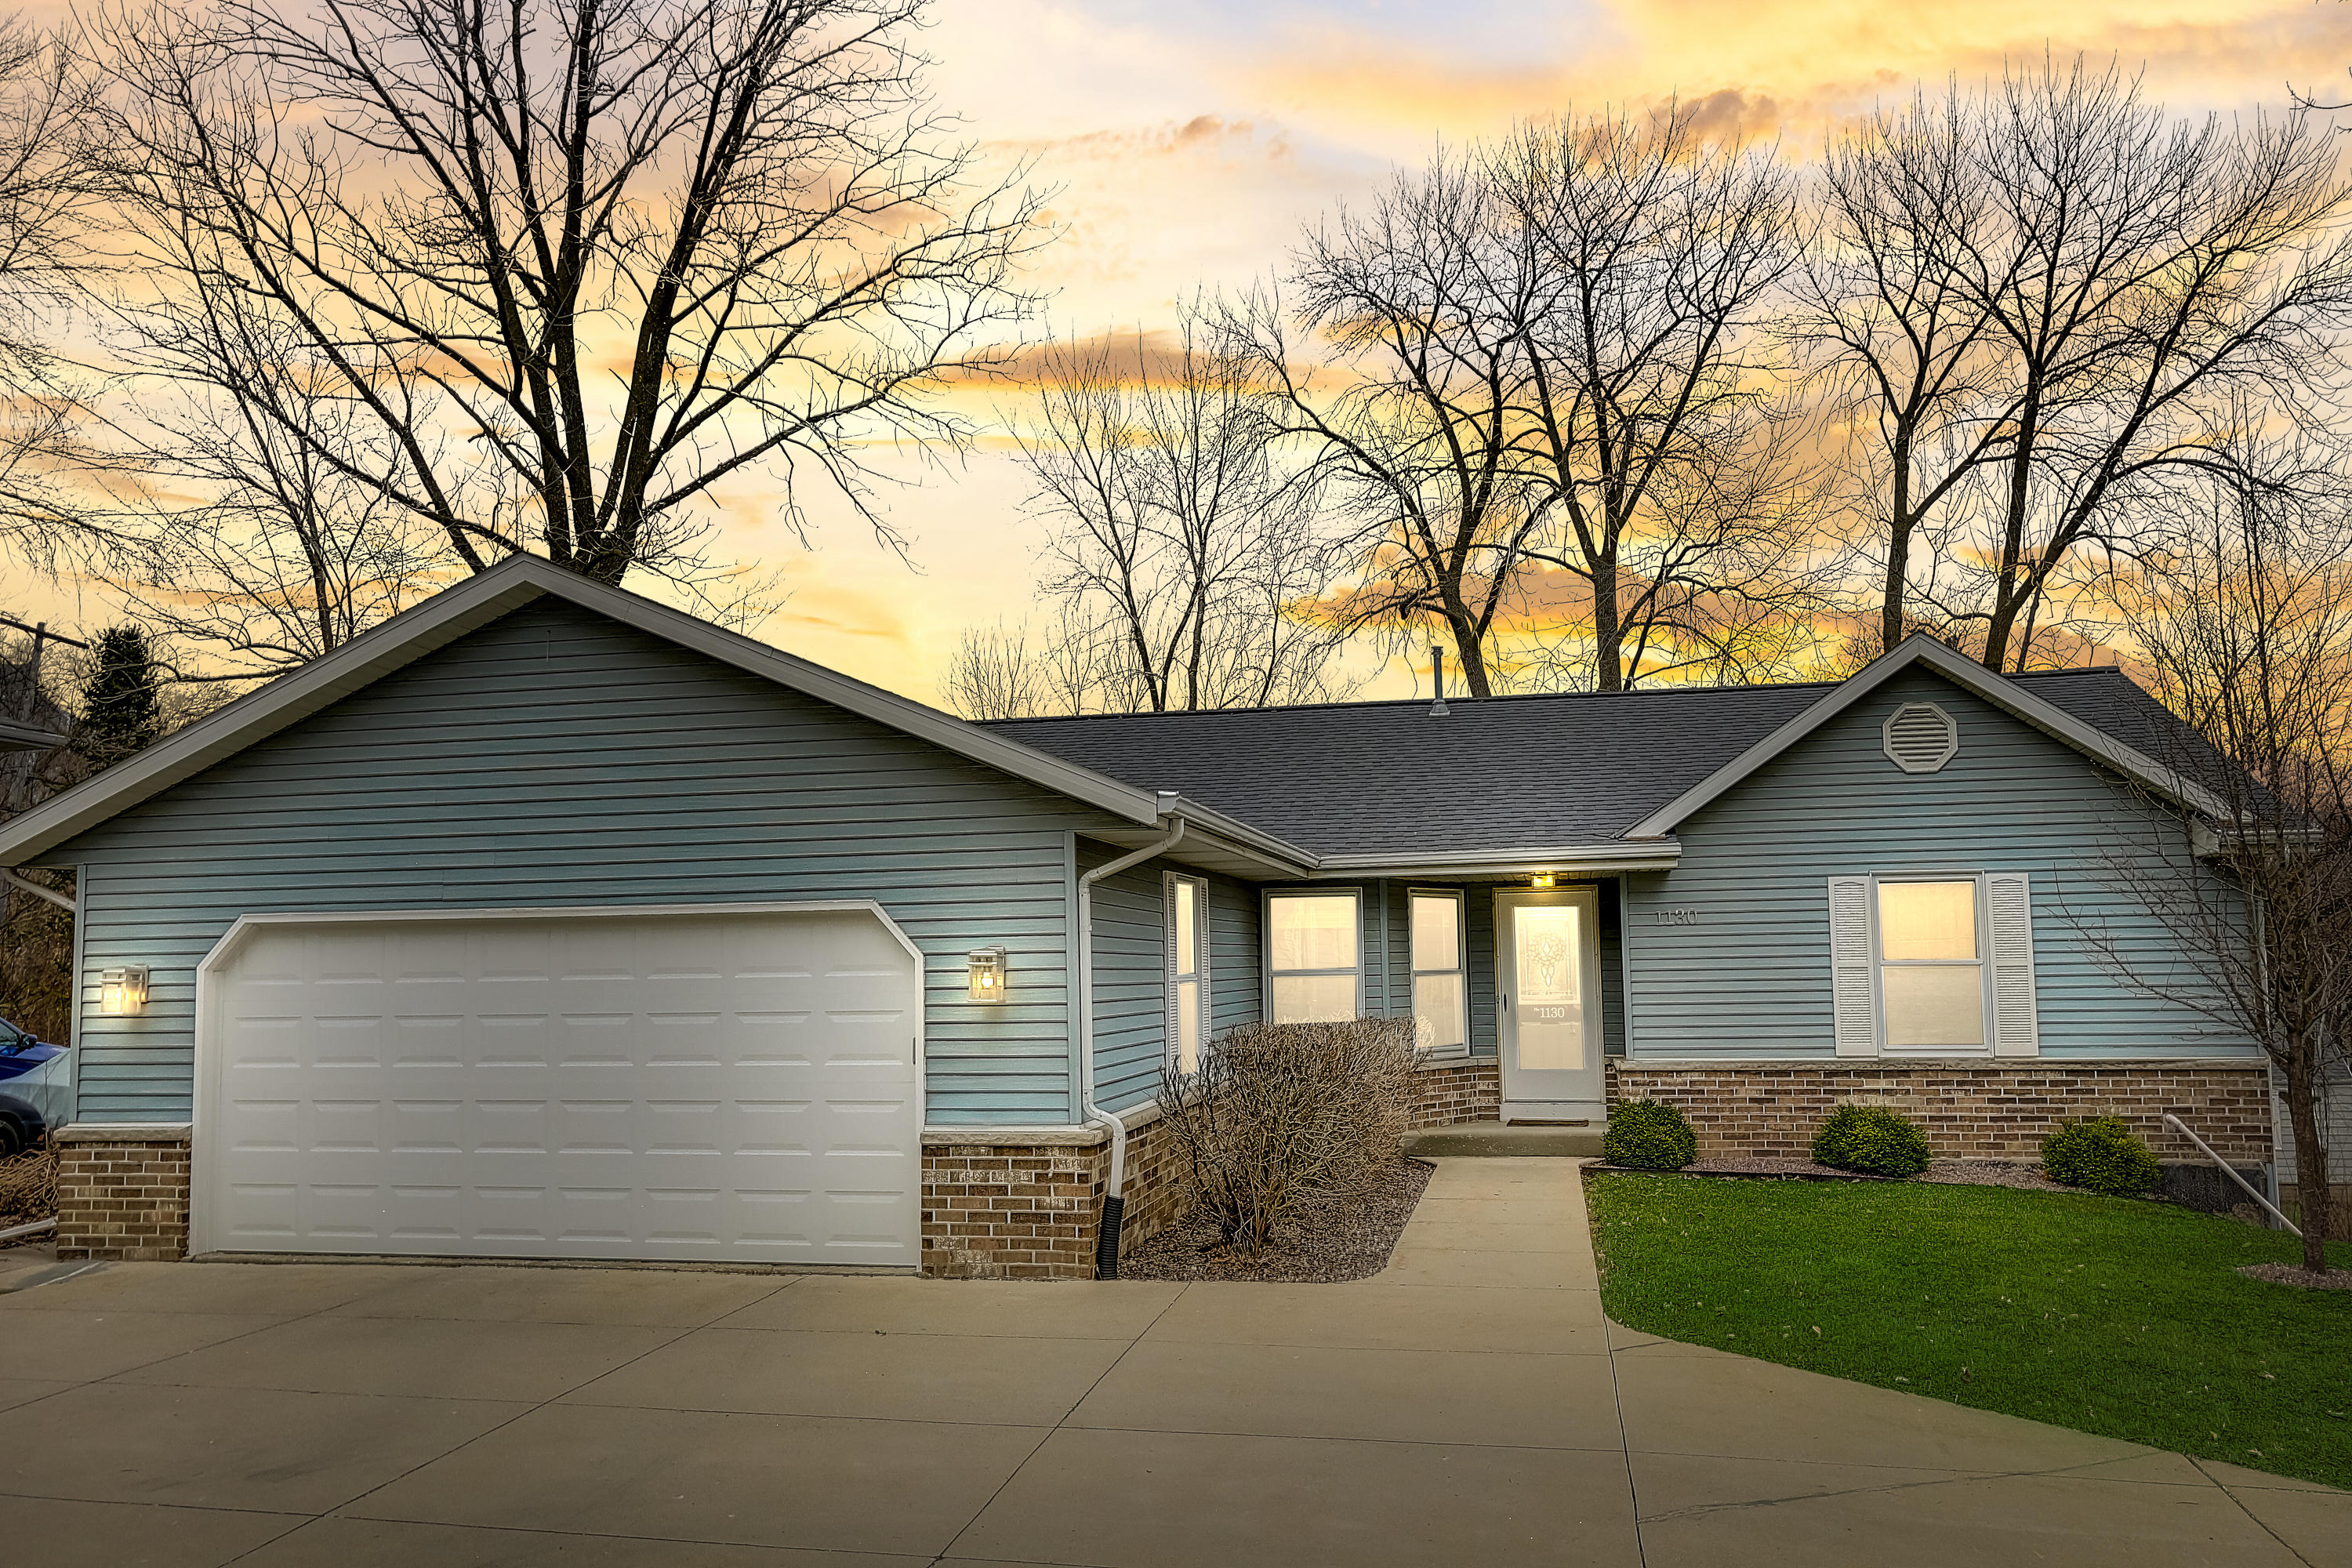 1130 Tower Hill Dr, Brookfield, Wisconsin 53045, 3 Bedrooms Bedrooms, 6 Rooms Rooms,3 BathroomsBathrooms,Single-Family,For Sale,Tower Hill Dr,1683451